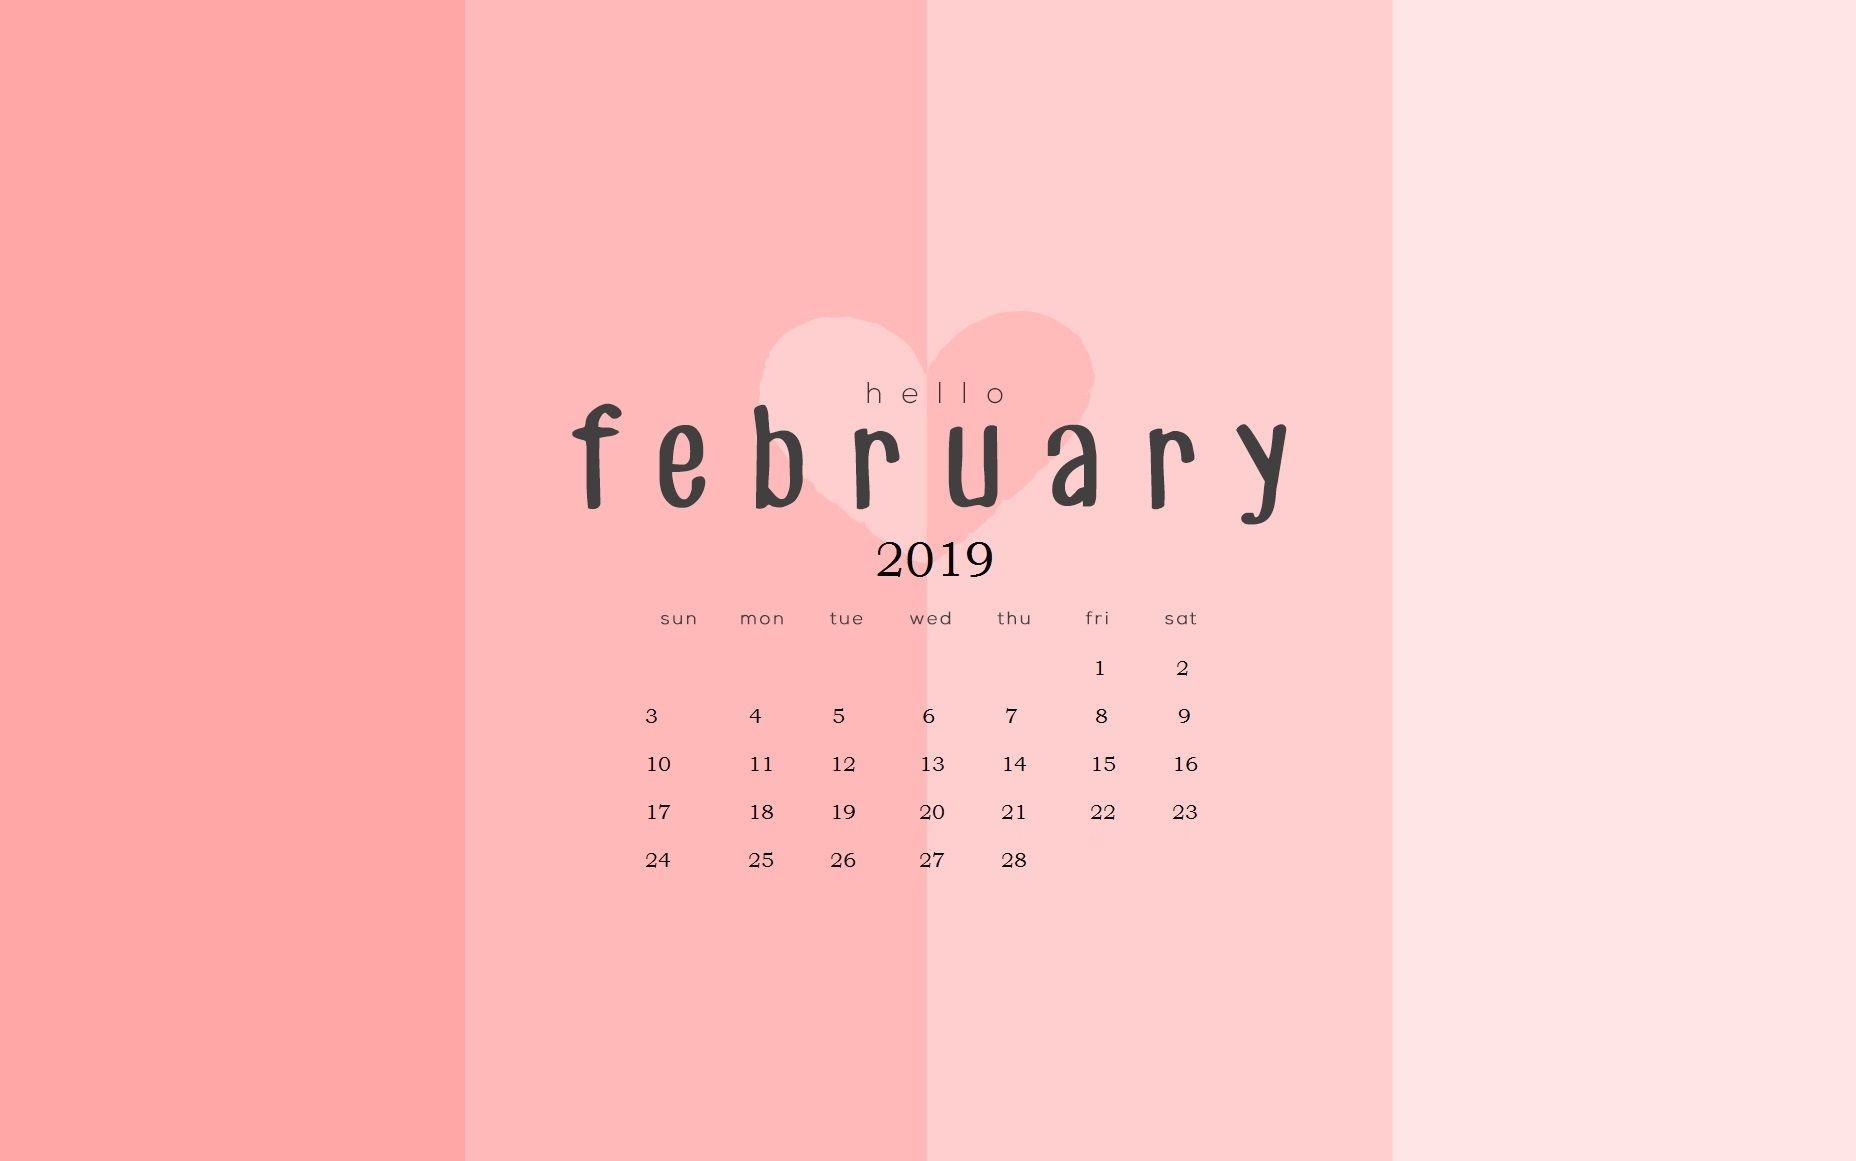 2019 February Desktop Calendar Wallpapers february 2019 calendar wallpapers calendar 2019::February 2019